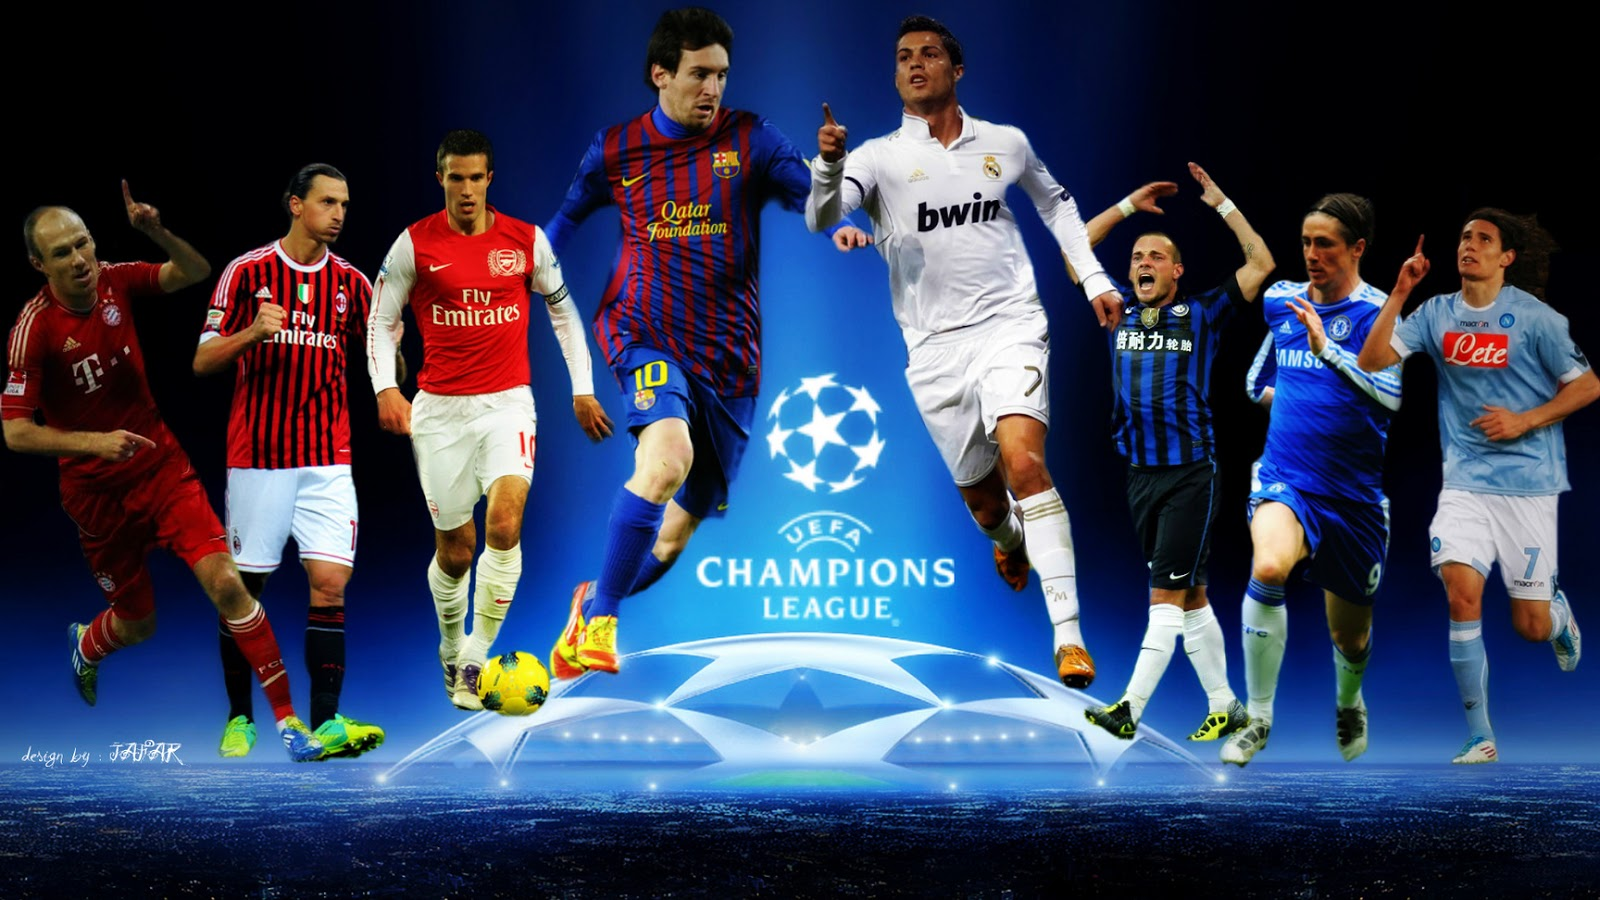 Champions League wallpaper HD 1280x800 1600x900